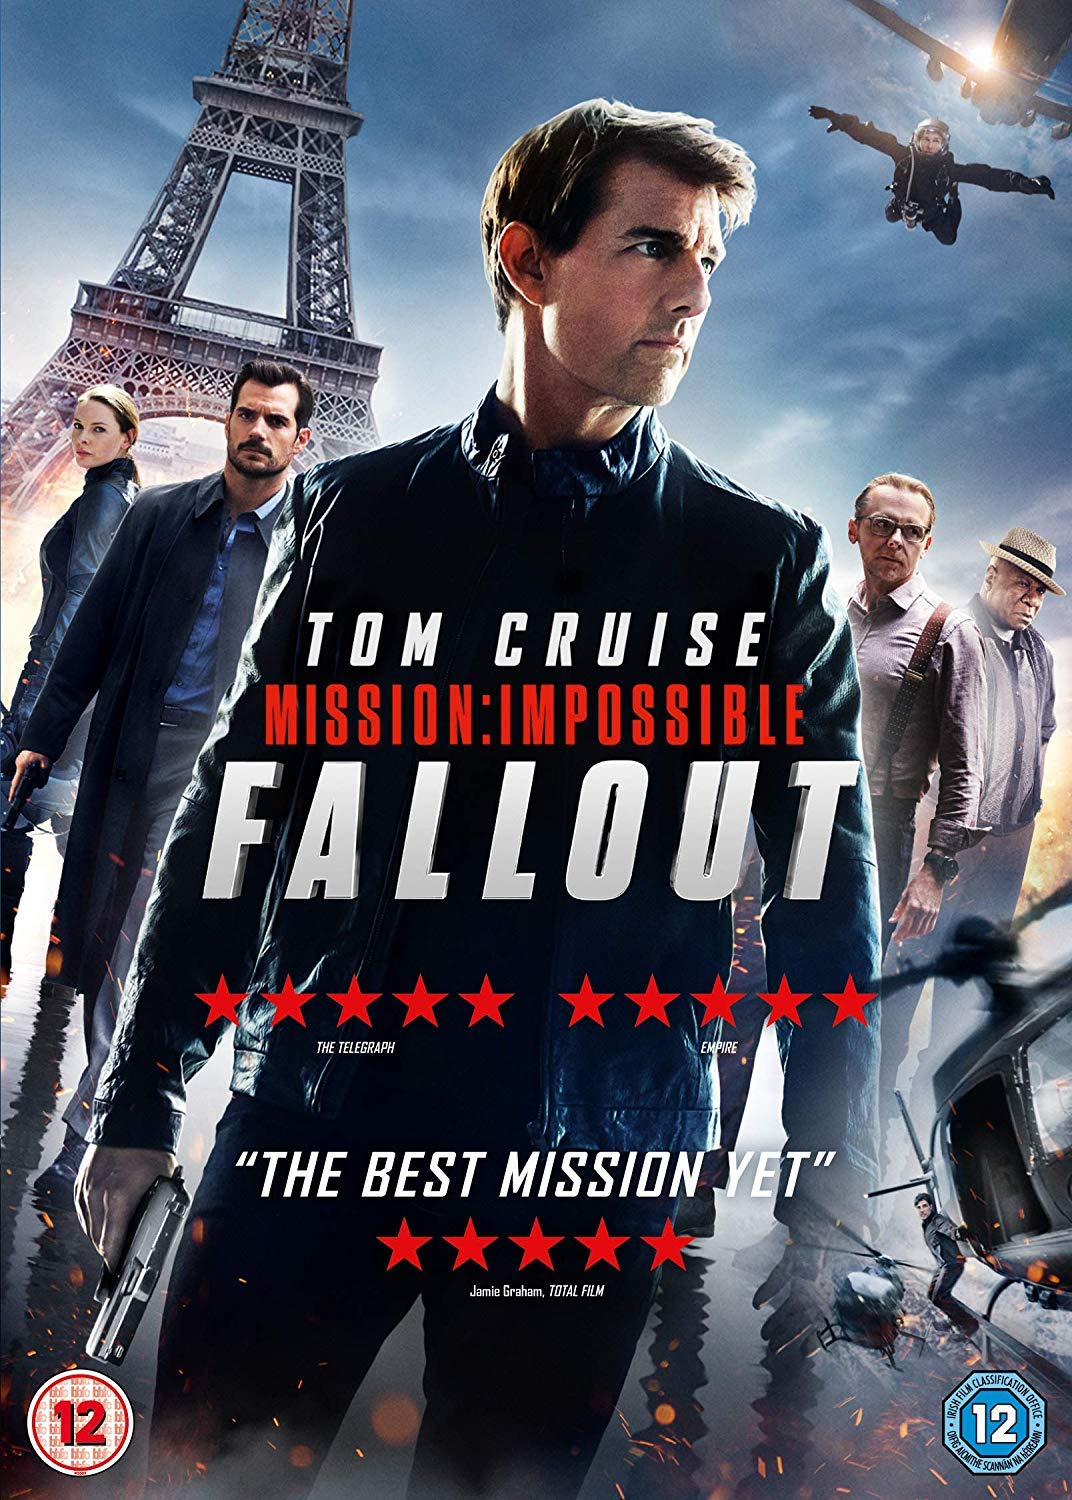 دانلود فیلم Mission Impossible Fallout 2018